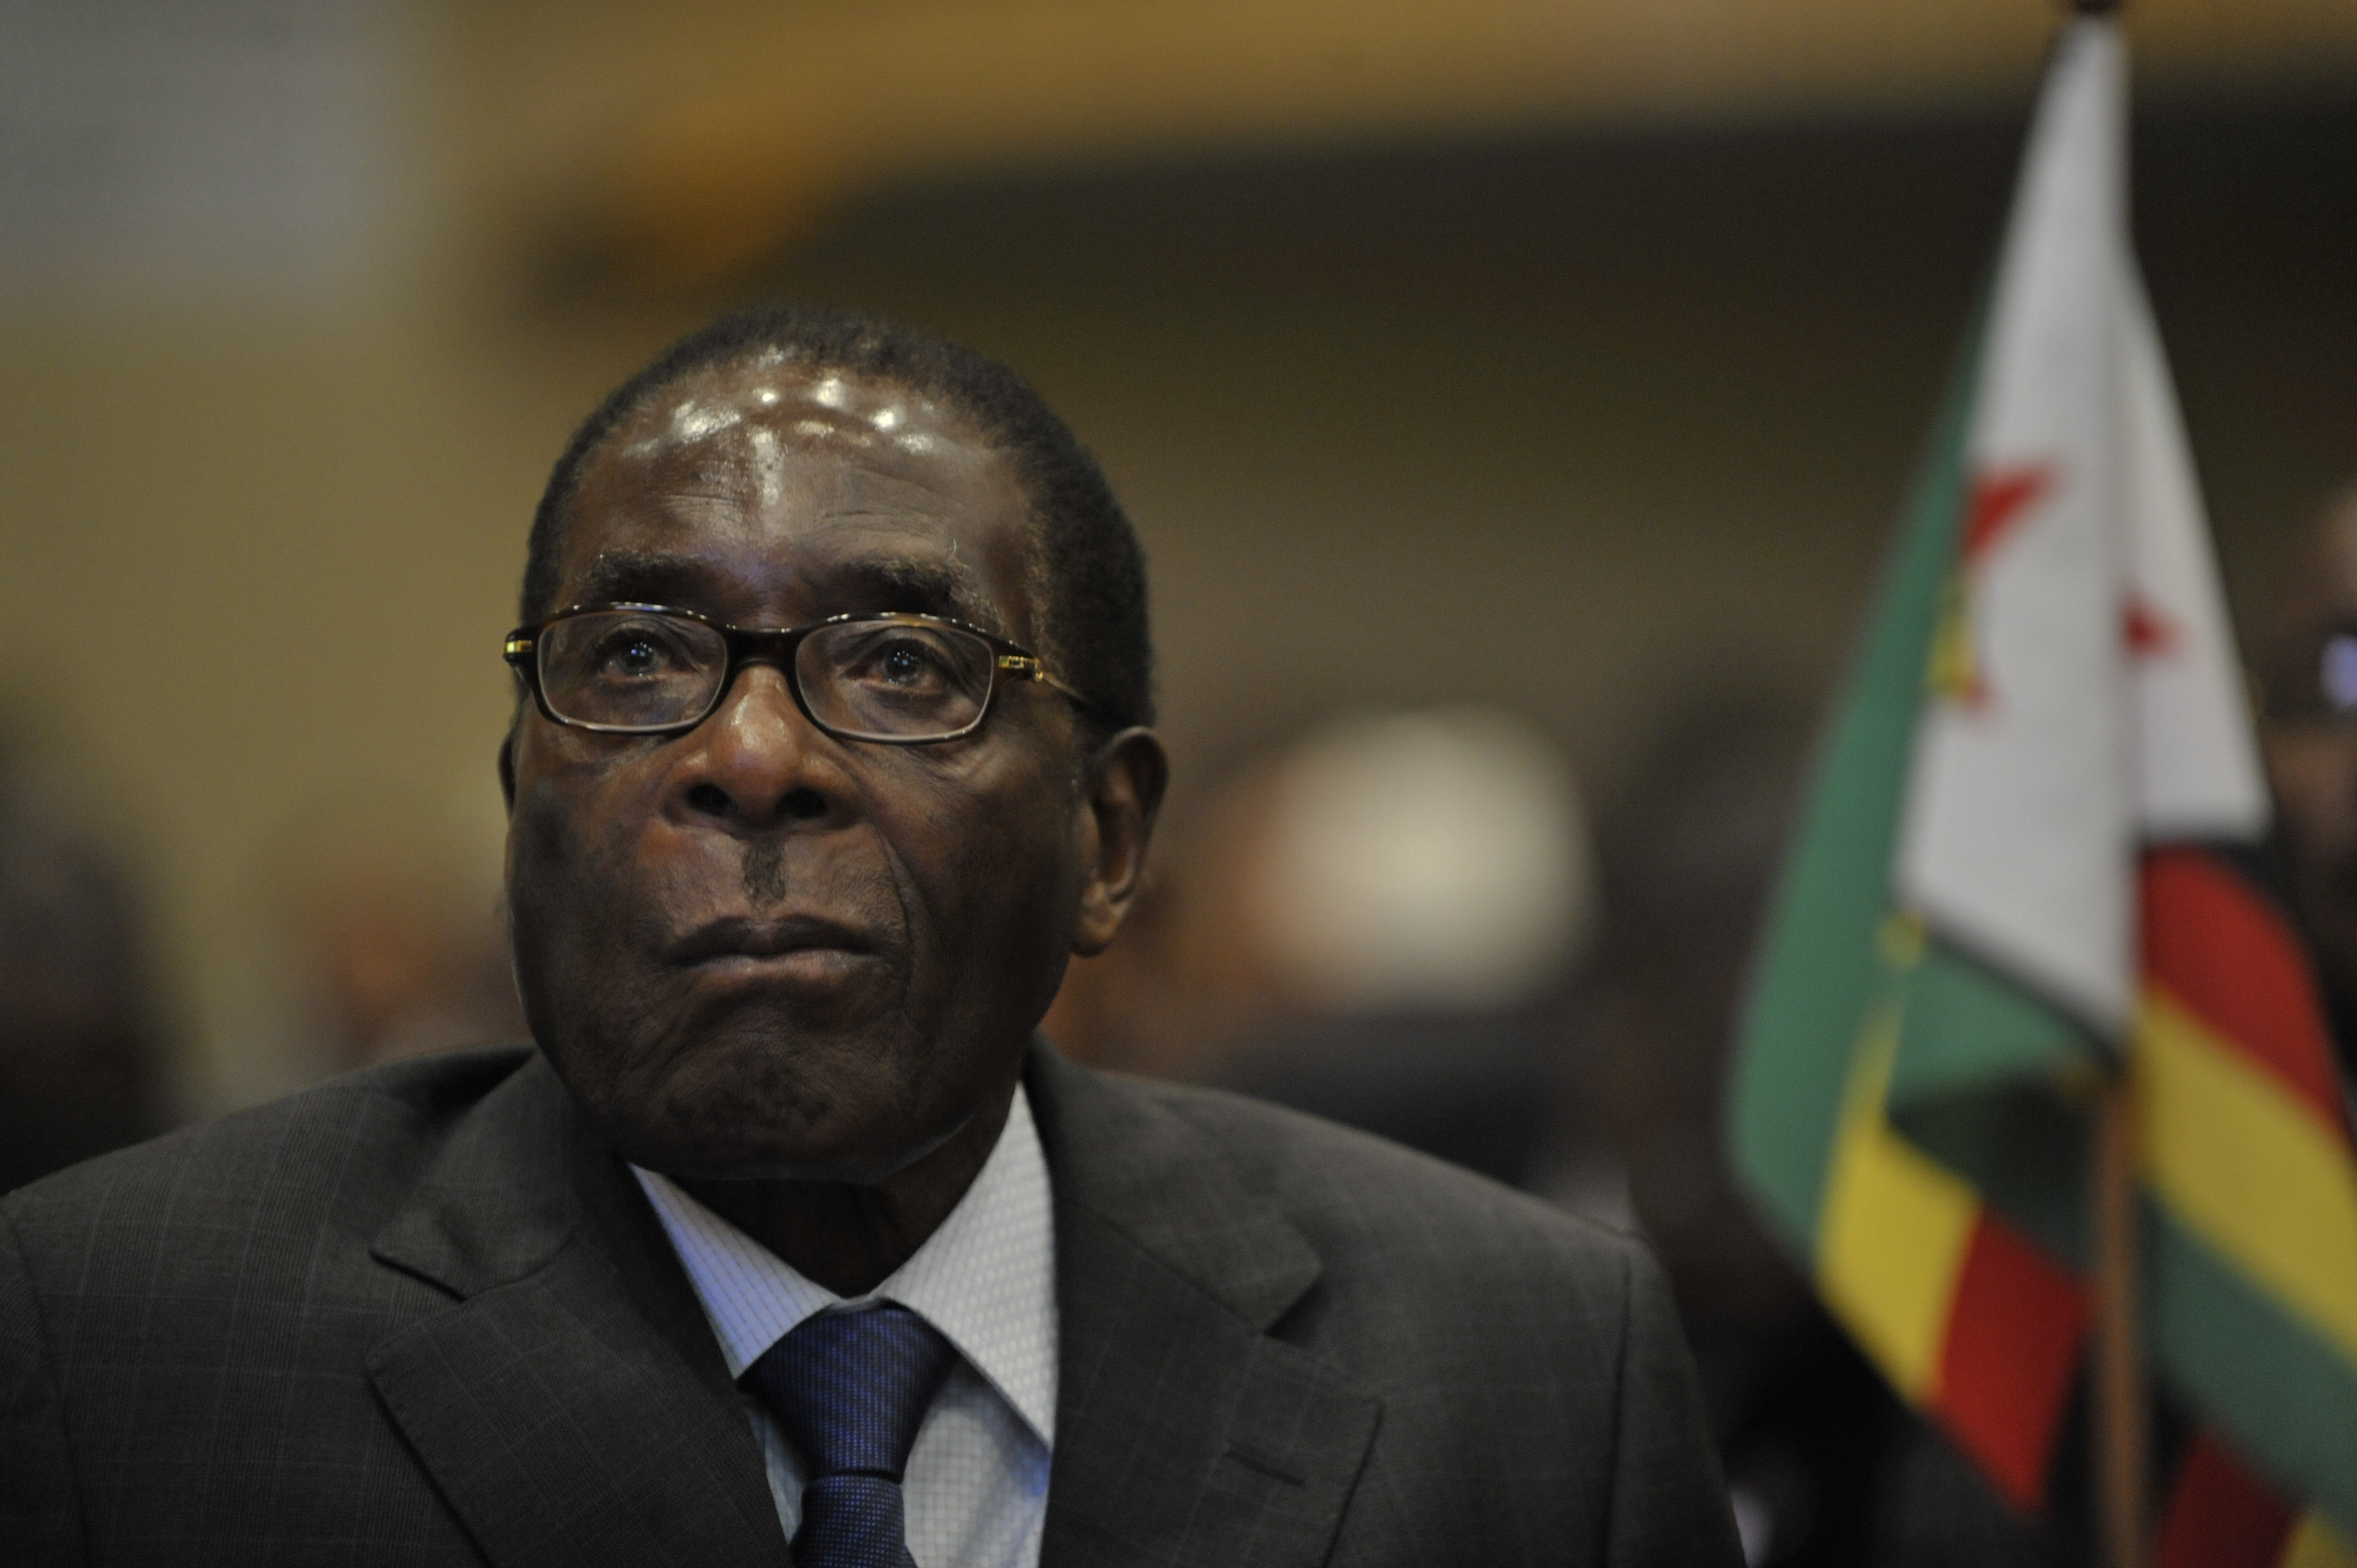 Robert Mugabe, president of Zimbabwe, attends the 12th African Union Summit Feb. 2, 2009 in Addis Ababa, Ethiopia. The assembly agreed to a schedule for the formation of Zimbabwe's new unity government, calling for the immediate lifting of sanctions on the country. (U.S. Navy photo by Mass Communication Specialist 2nd Class Jesse B. Awalt/Released)